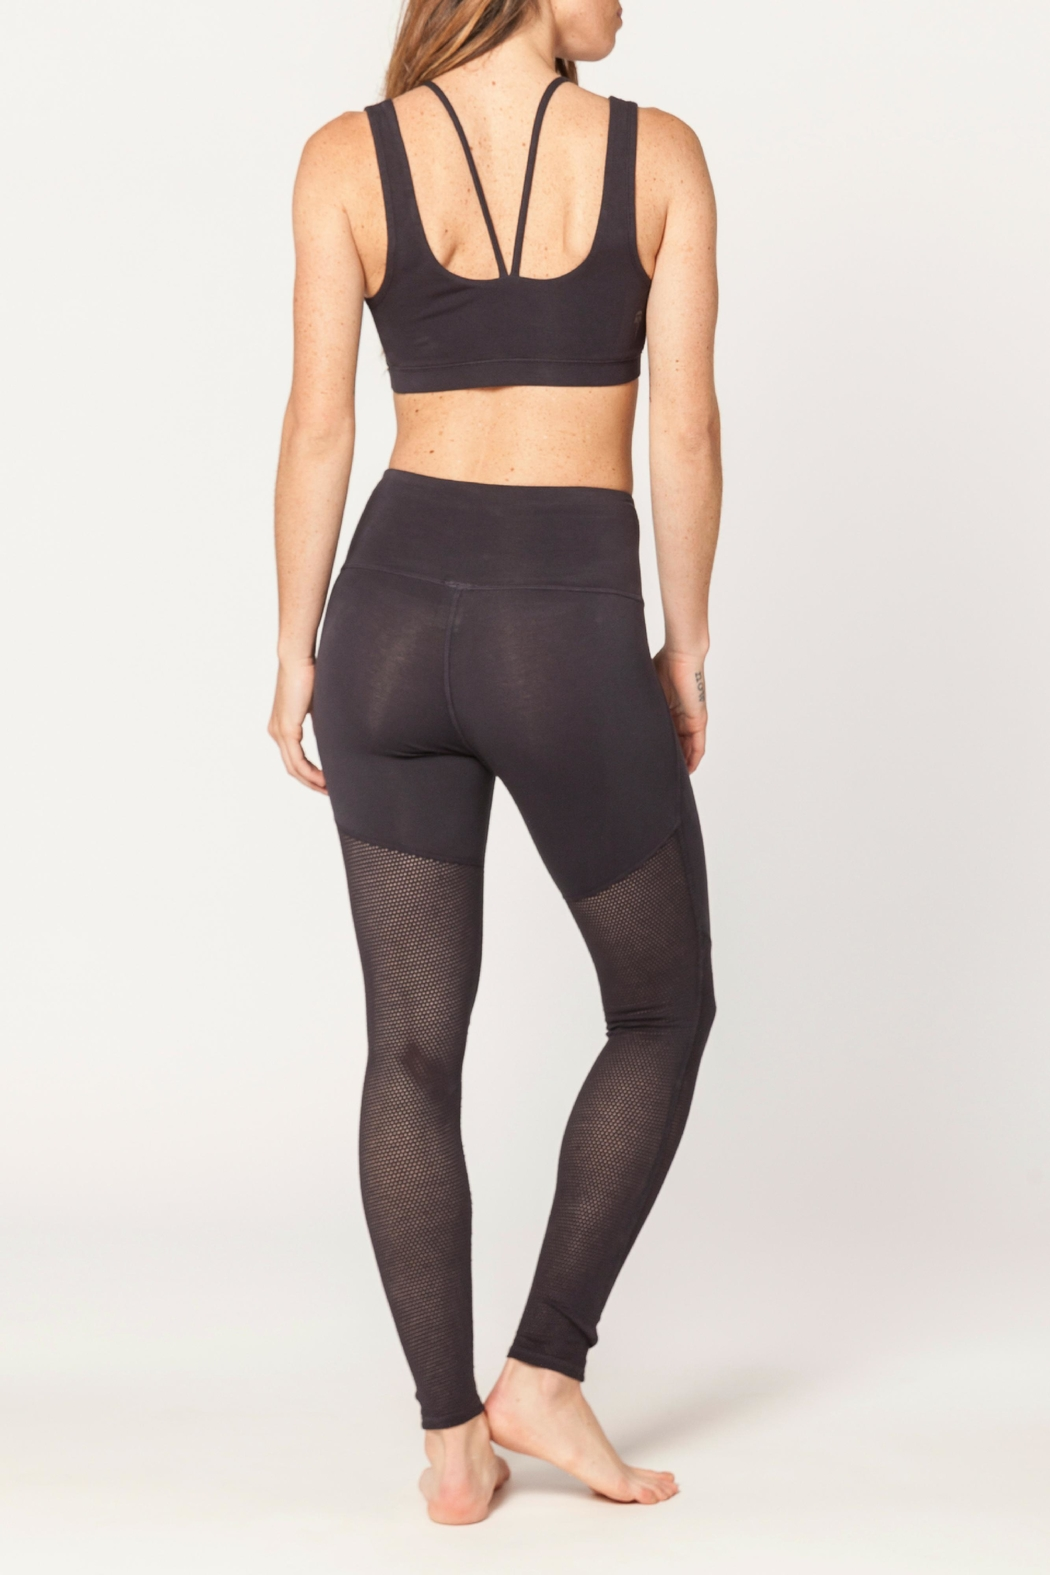 Electric & Rose Pier Legging - Side Cropped Image